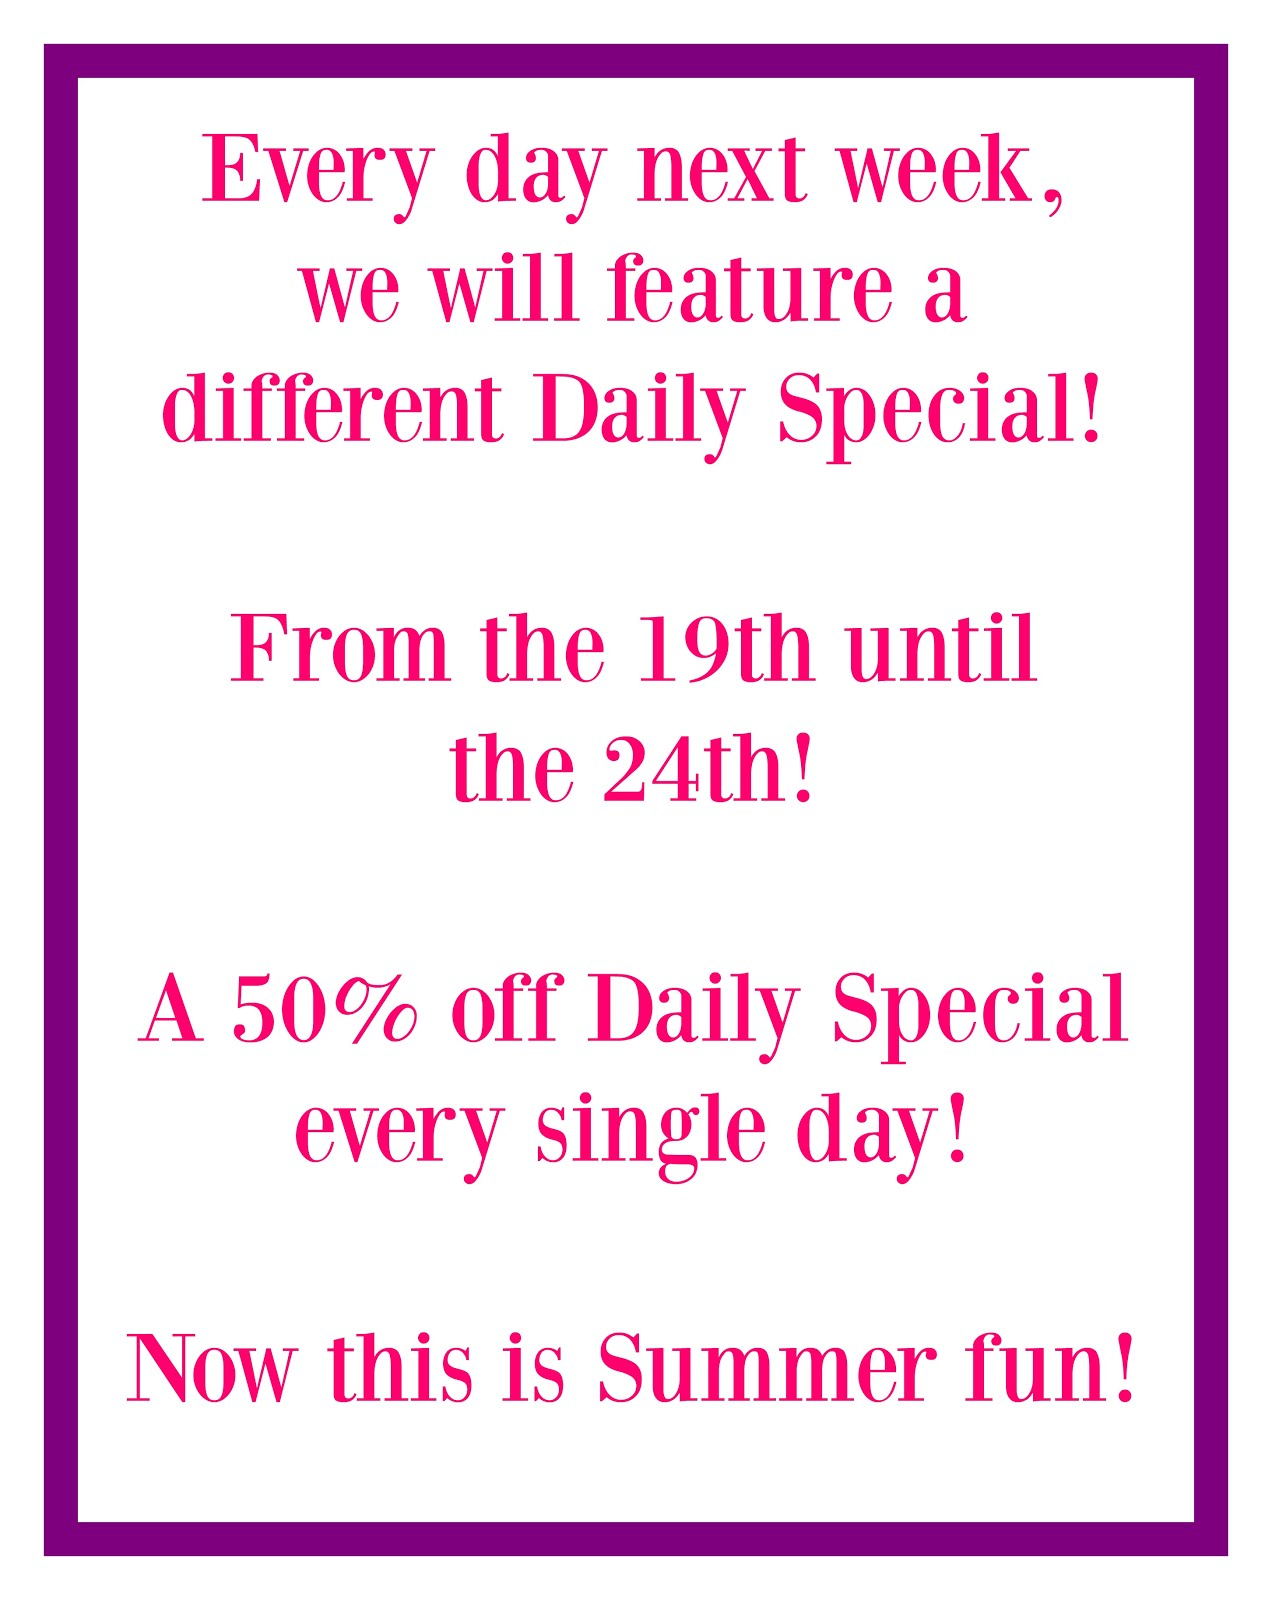 A Week of Daily Special!